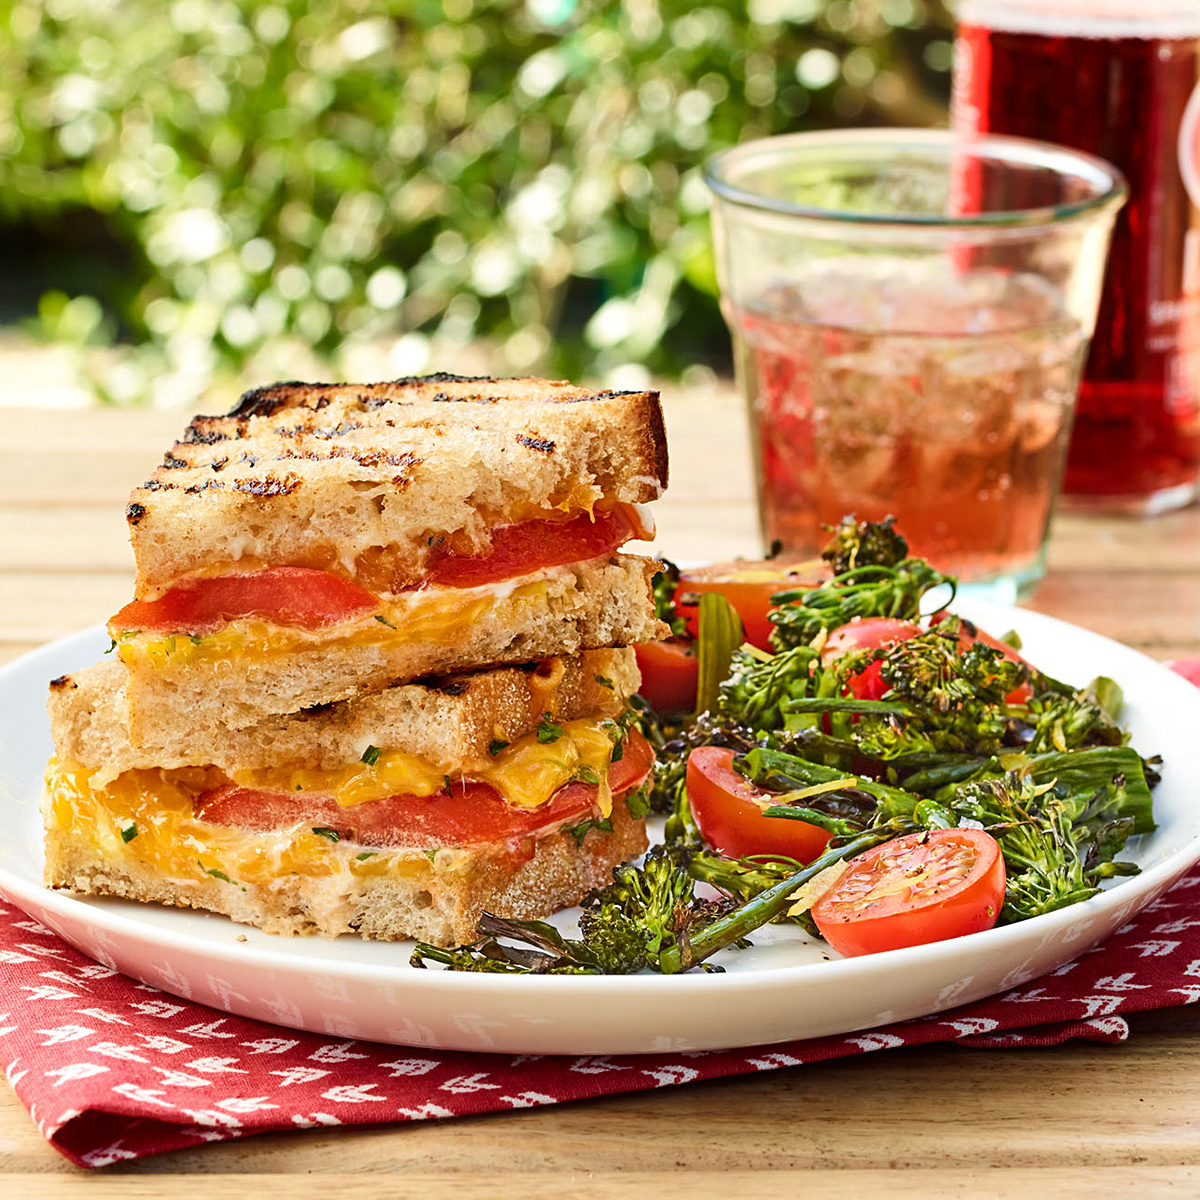 Grilled Cheese Sandwiches with Charred Broccolini Salad